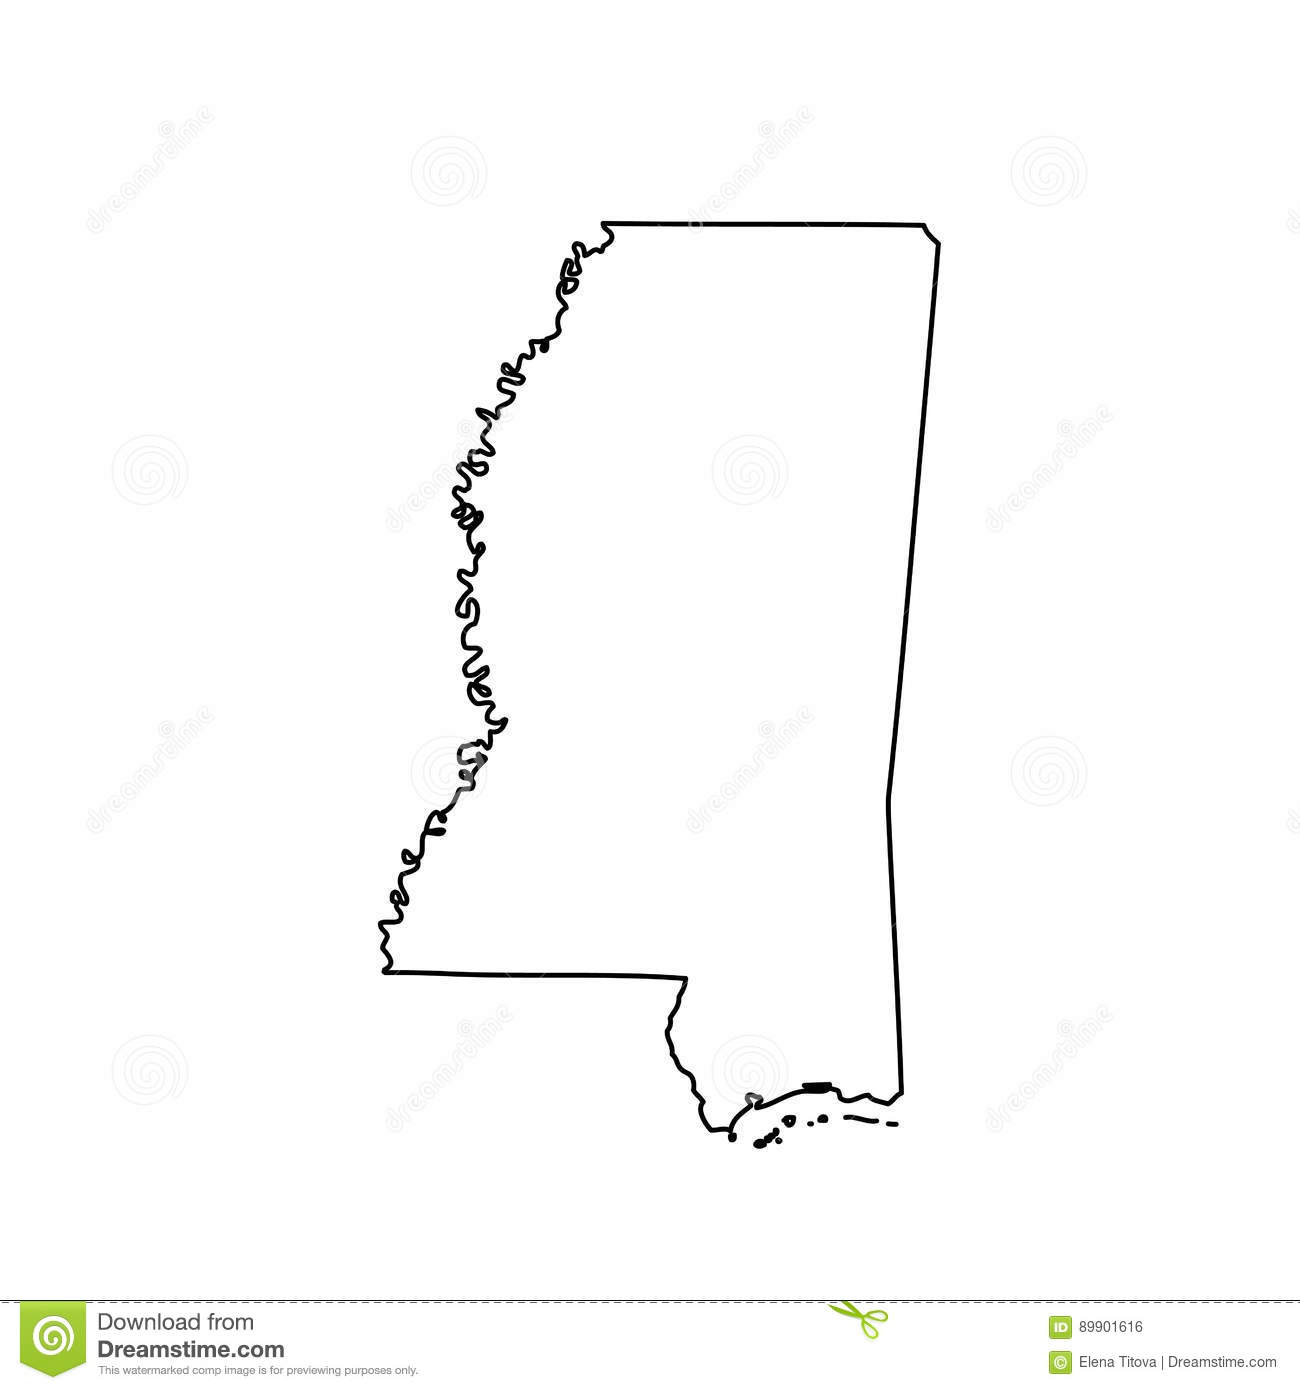 Map Of The U.S. State Of Mississippi Stock Vector ... S In Mississippi Map on louisiana's map, maryland's map, kentucky's map, maine's map, oklahoma's map, mississippi regions map, ms road map, georgia's map, michigan's map, indiana's map, missouri's map, new mexico's map, mississippi county map, mississippi state map, new jersey's map,